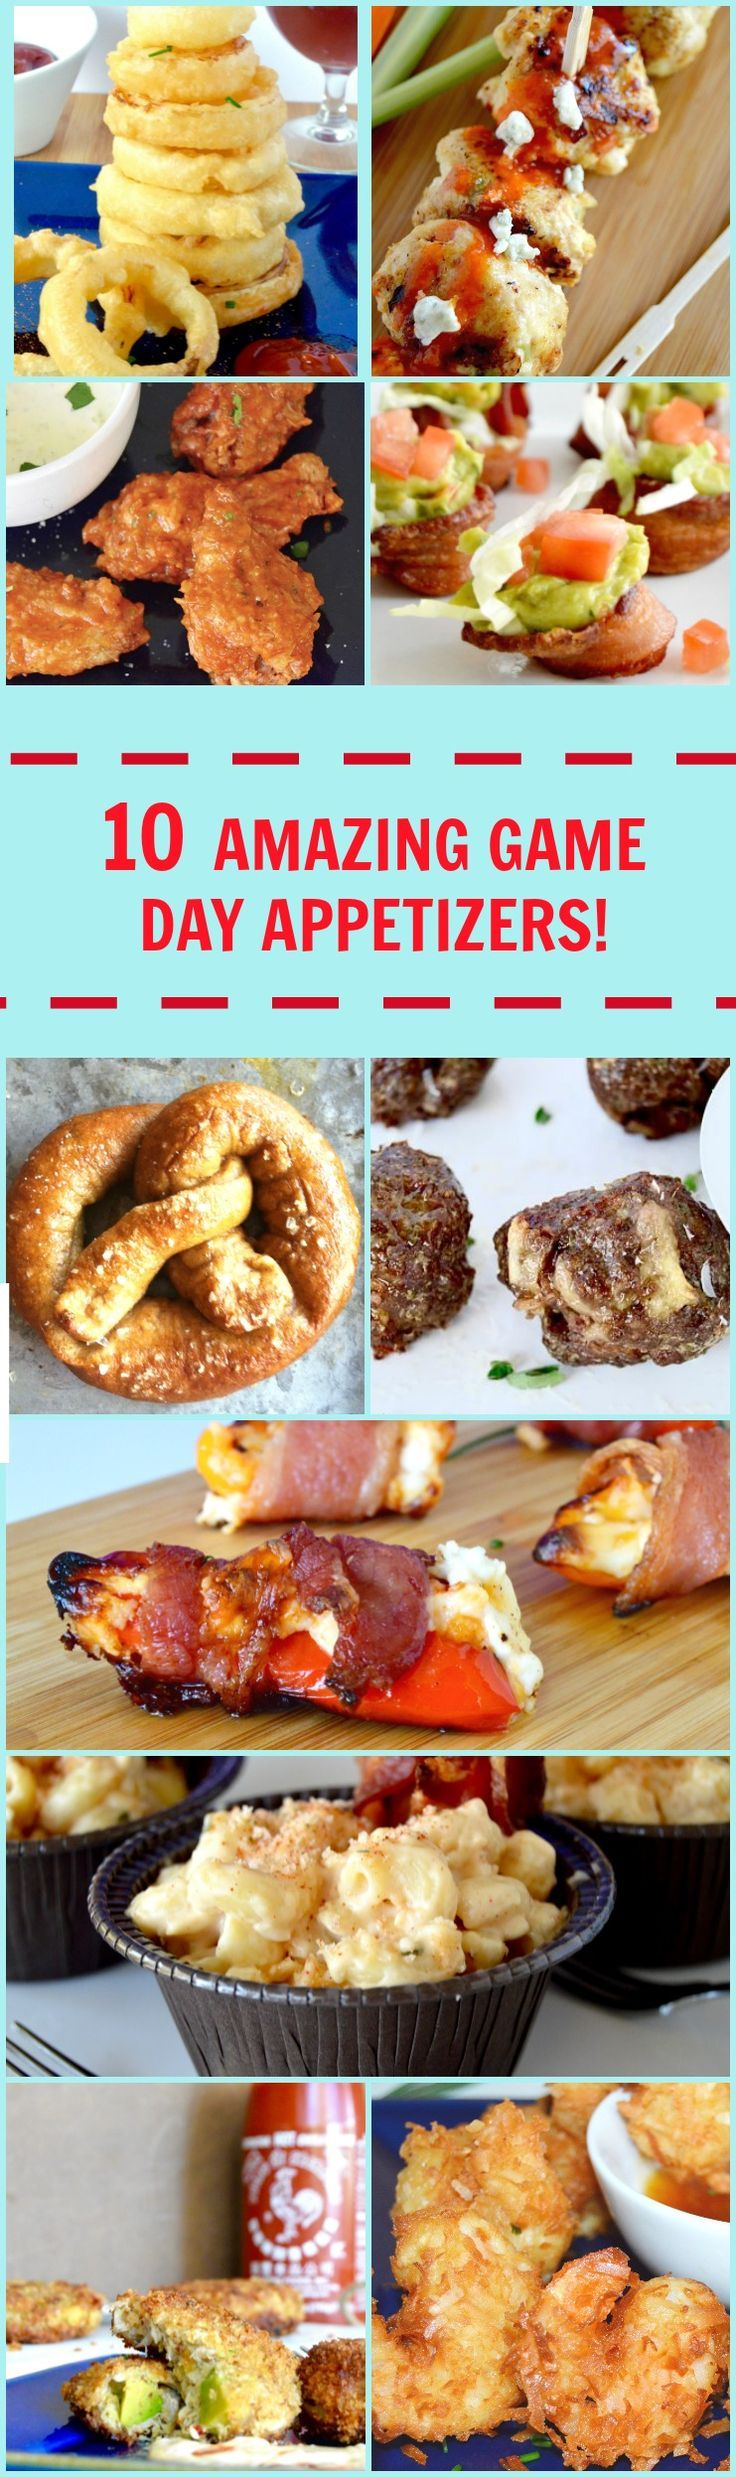 10 amazing Game day Appetizers that will be perfect for any Game day Party! chicken wings, avocado crabcake, buffalo meatballs, Mac n cheese, onion rings, pretzels, poppers, bacon.